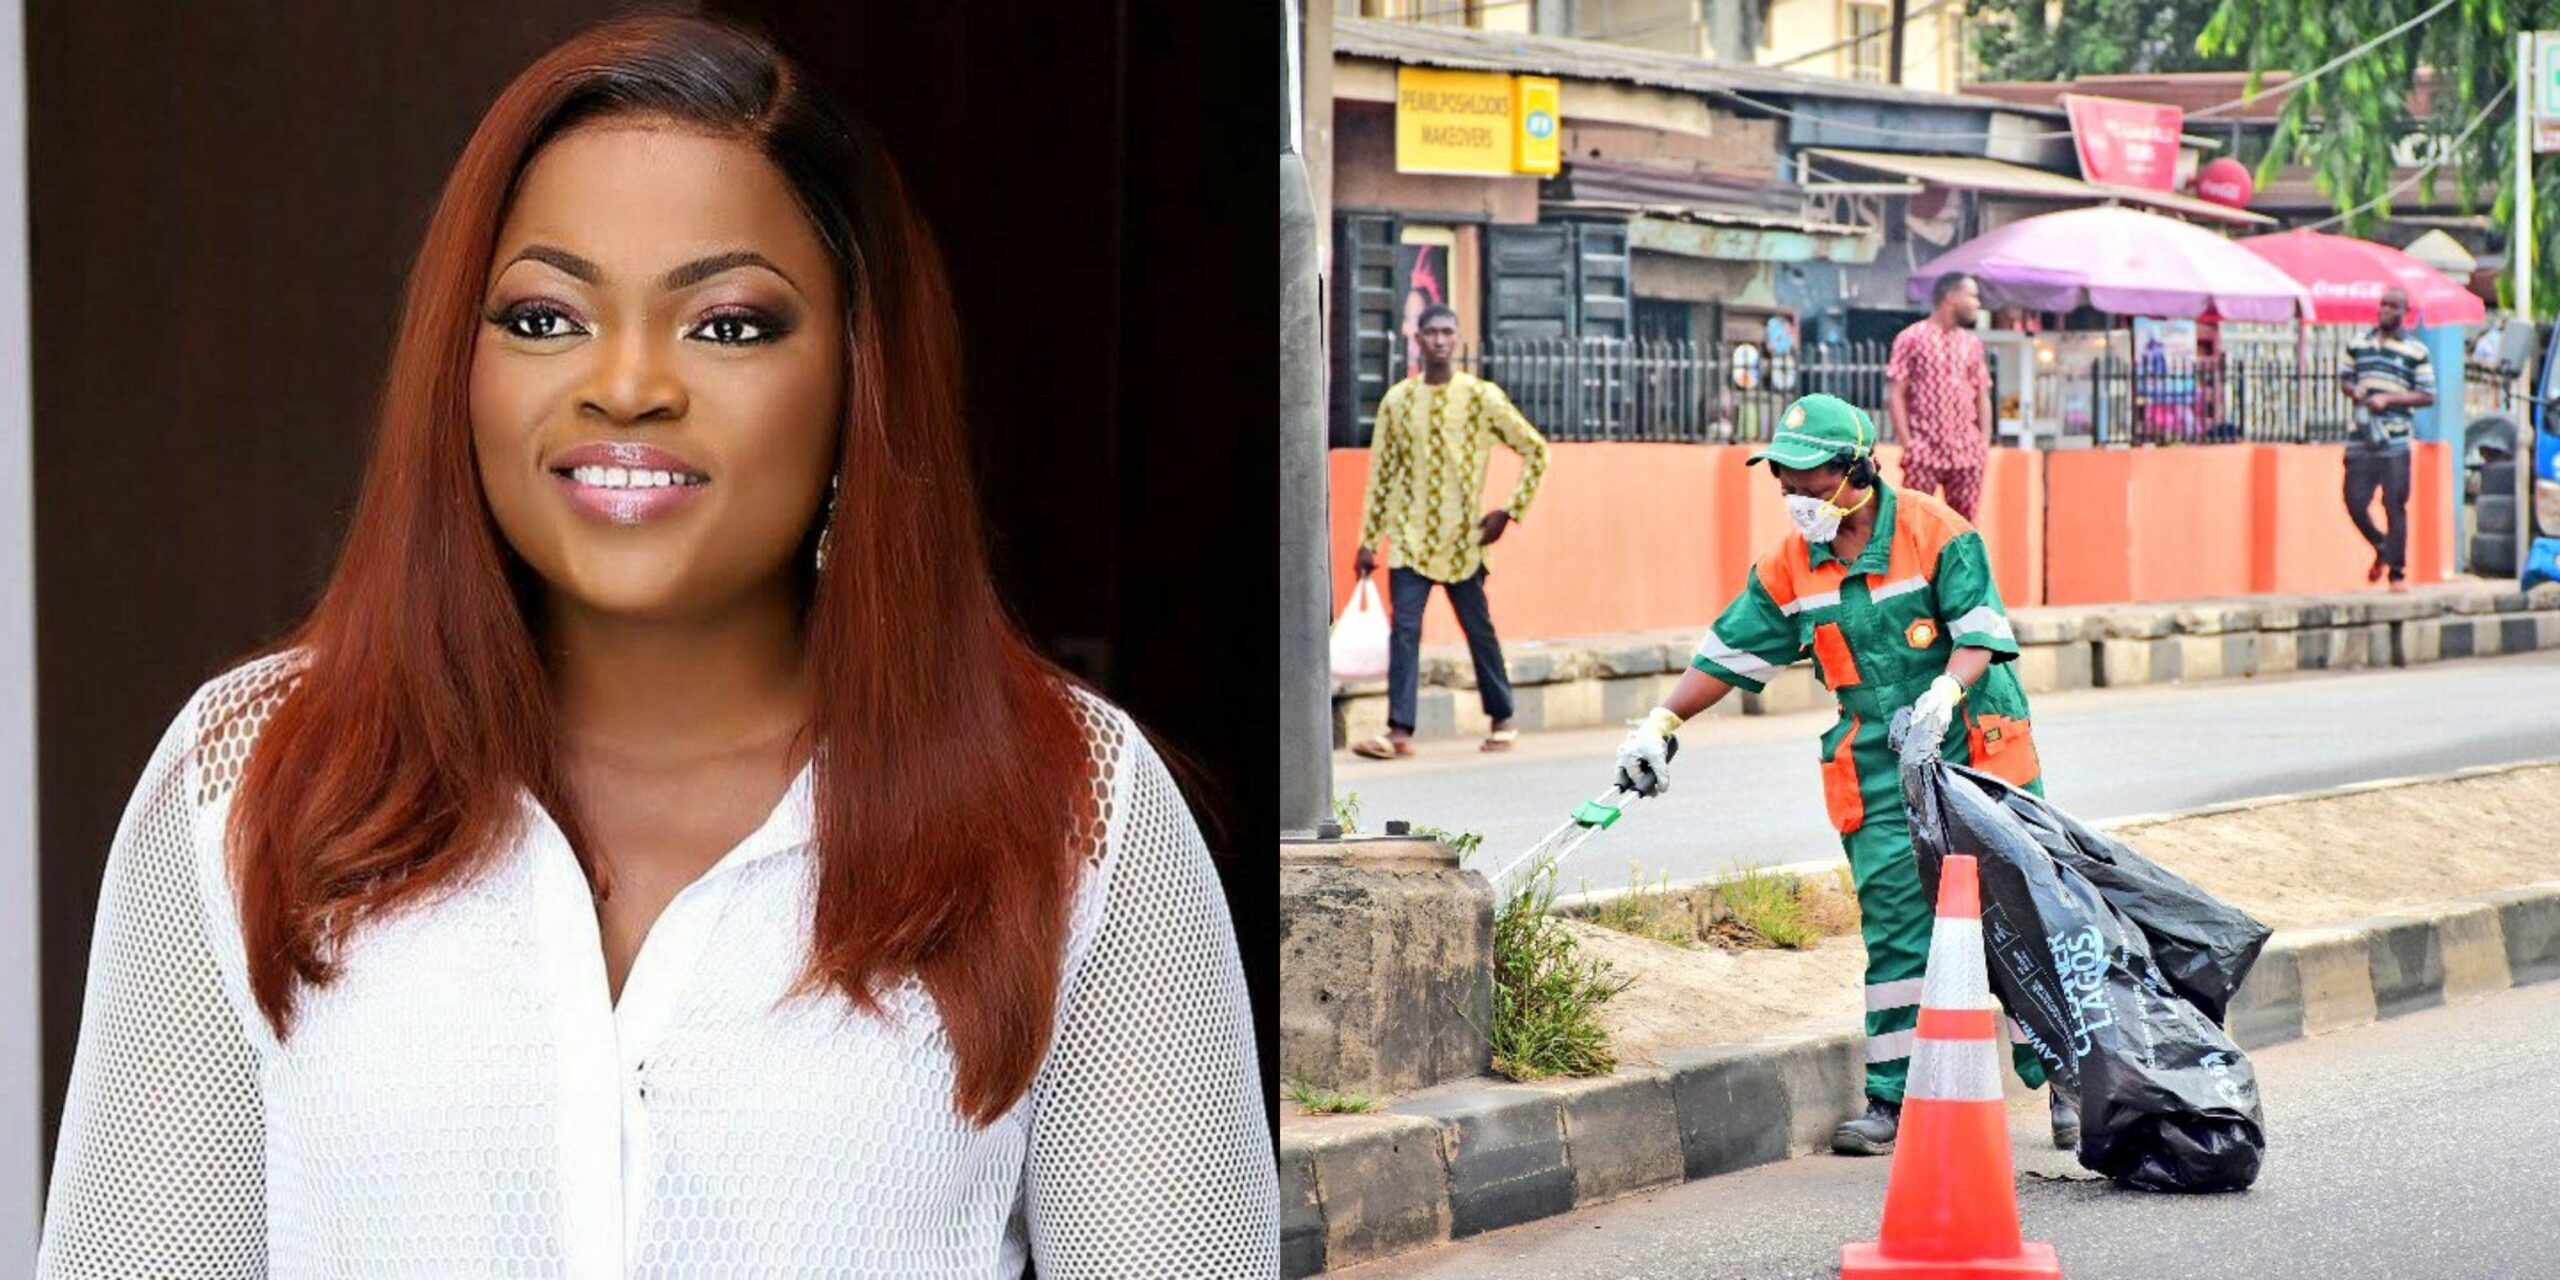 New details emerge on viral photo of Funke Akindele cleaning the streets as punishment